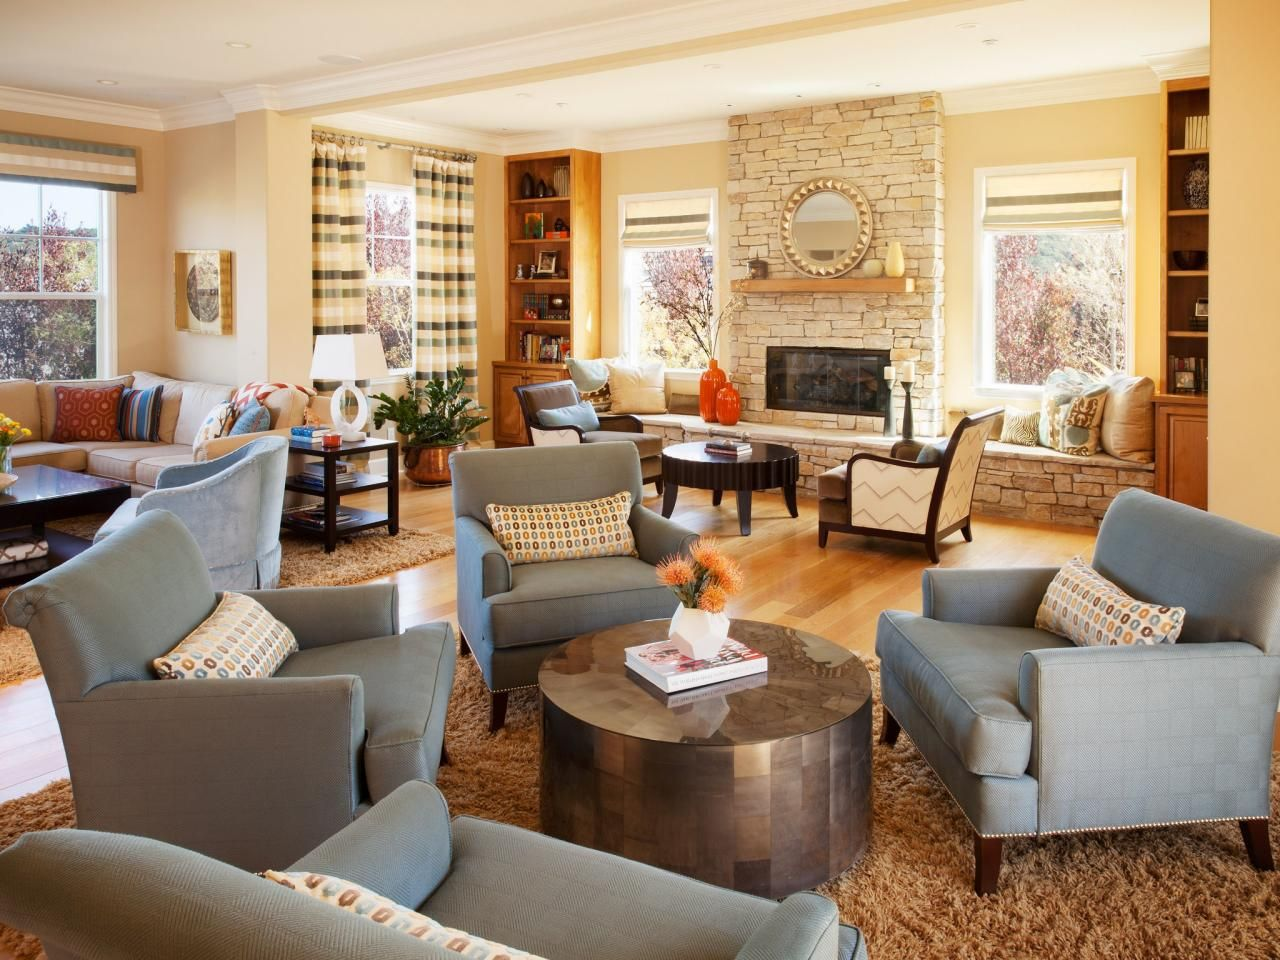 This Spacious Living Room Is Divided Into Several Sitting Areas Including One Anchored By A